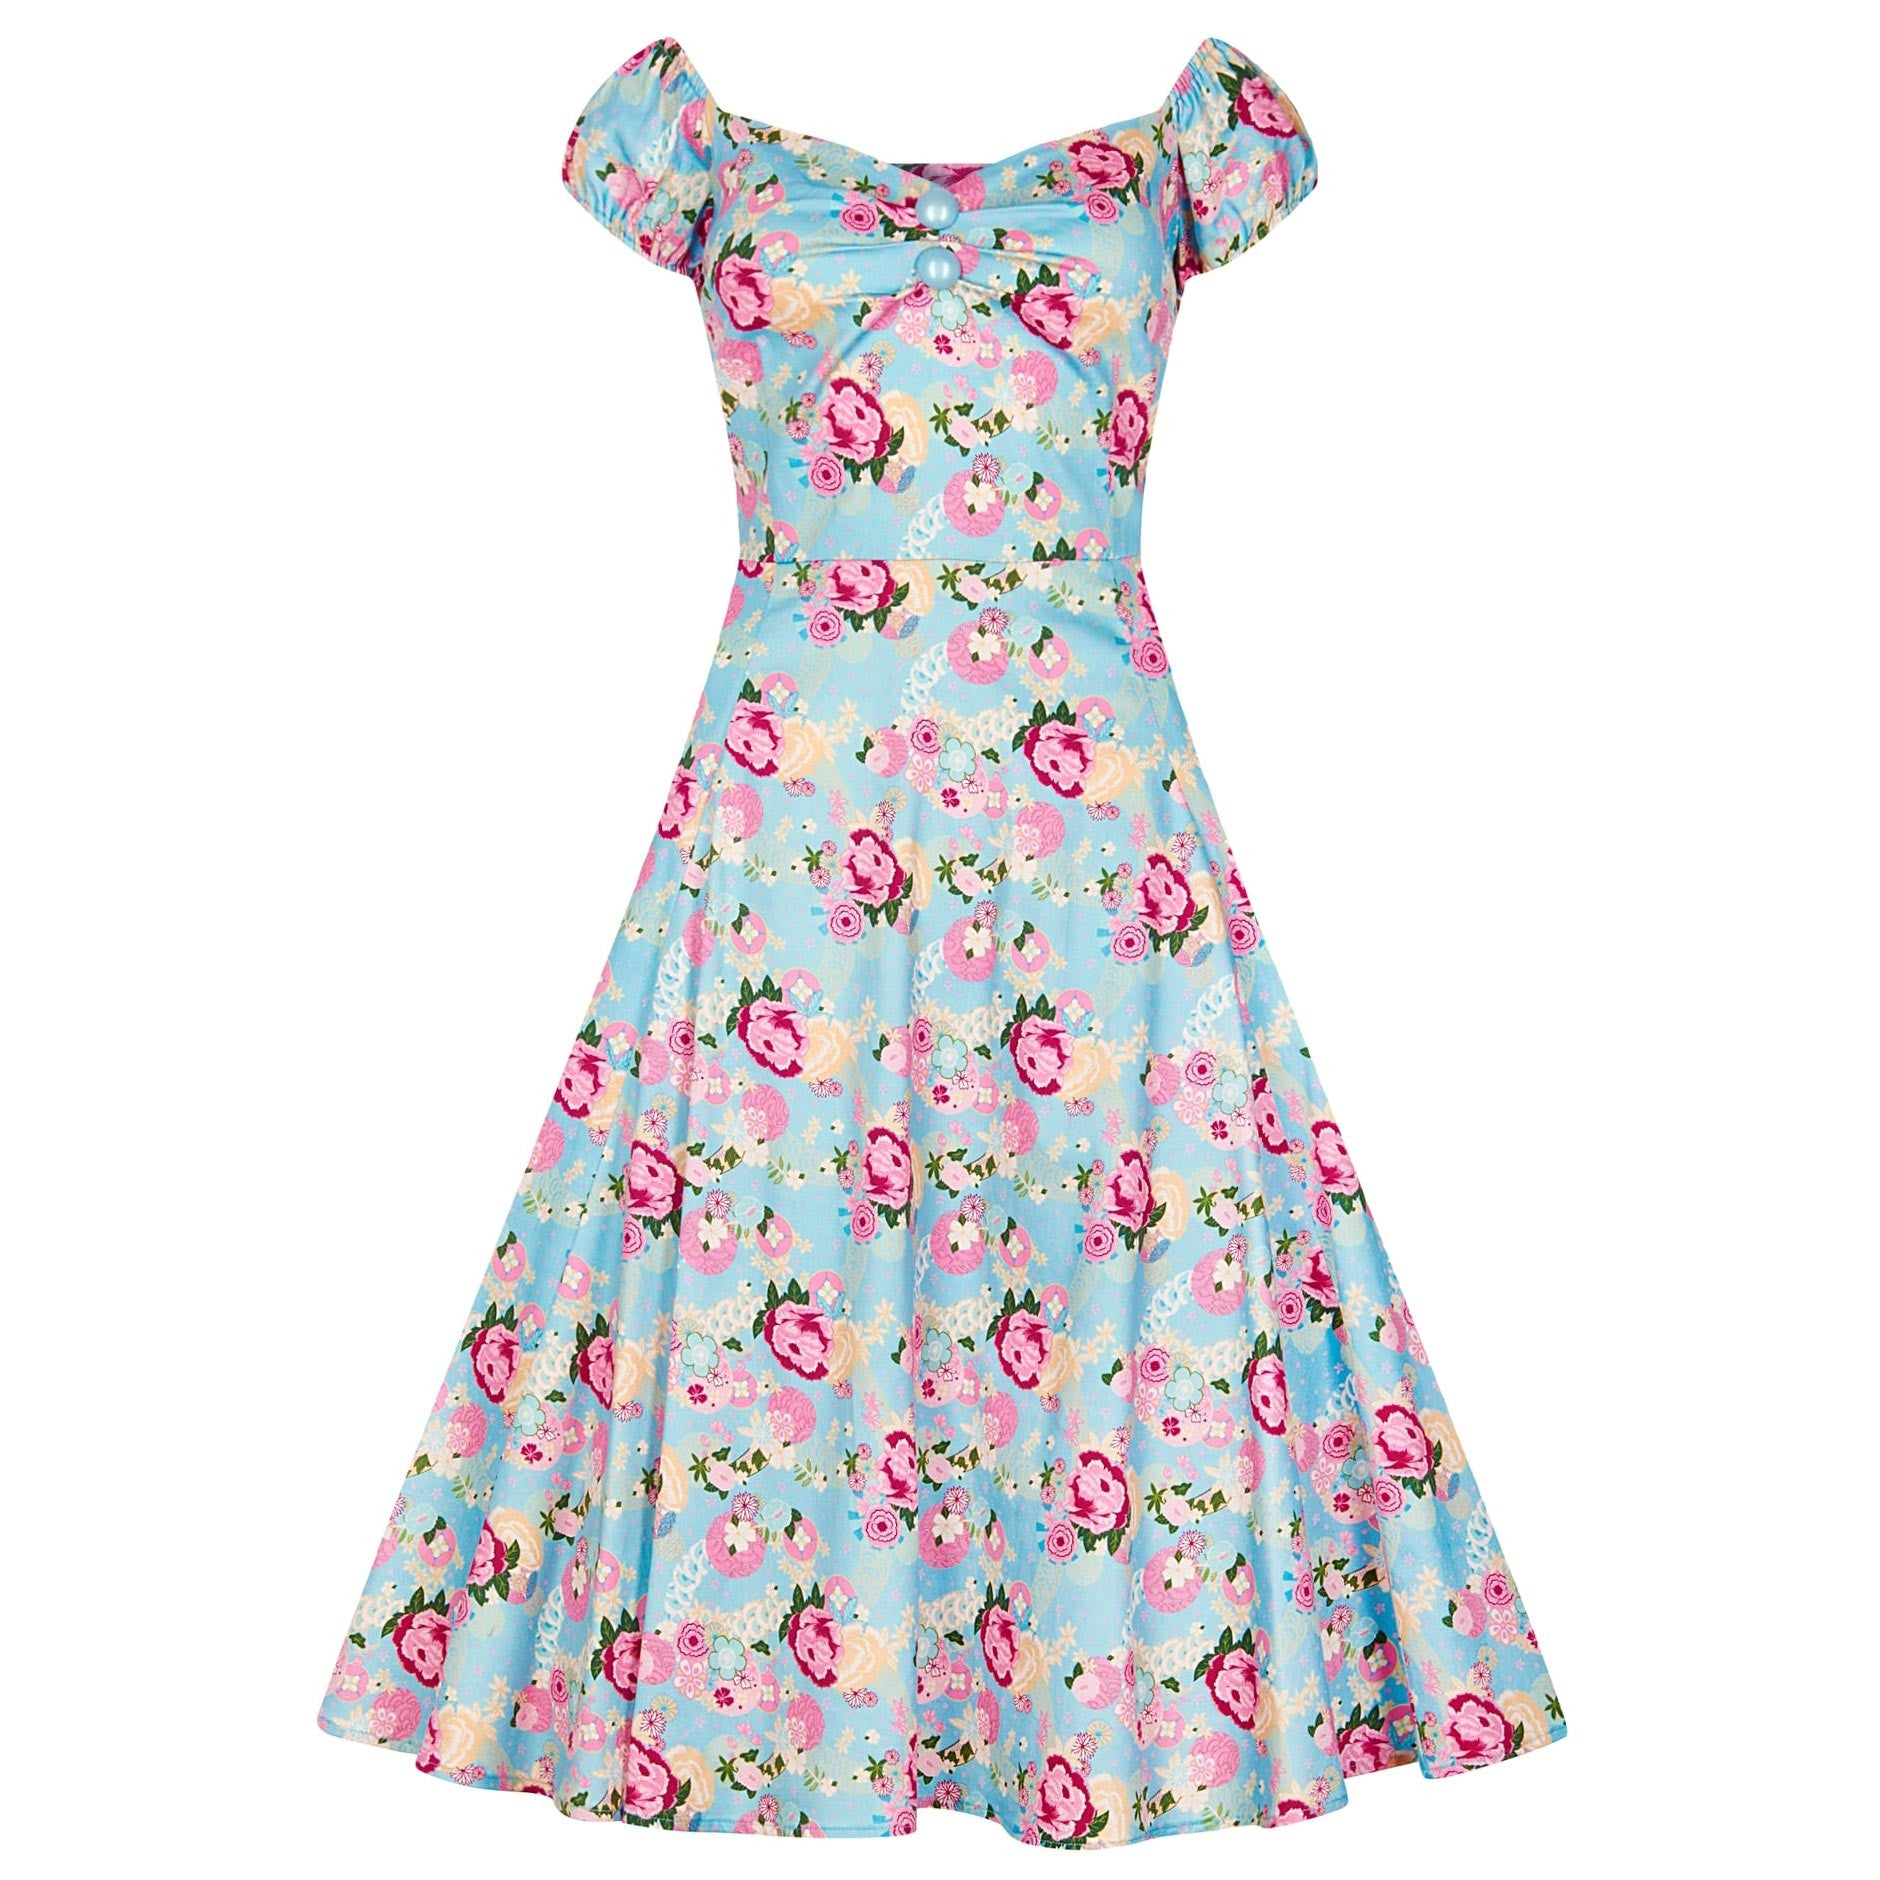 05f39de9b80db Collectif Vintage Blue and Pink Floral Doll 50s Swing Dress - Pretty Kitty  Fashion